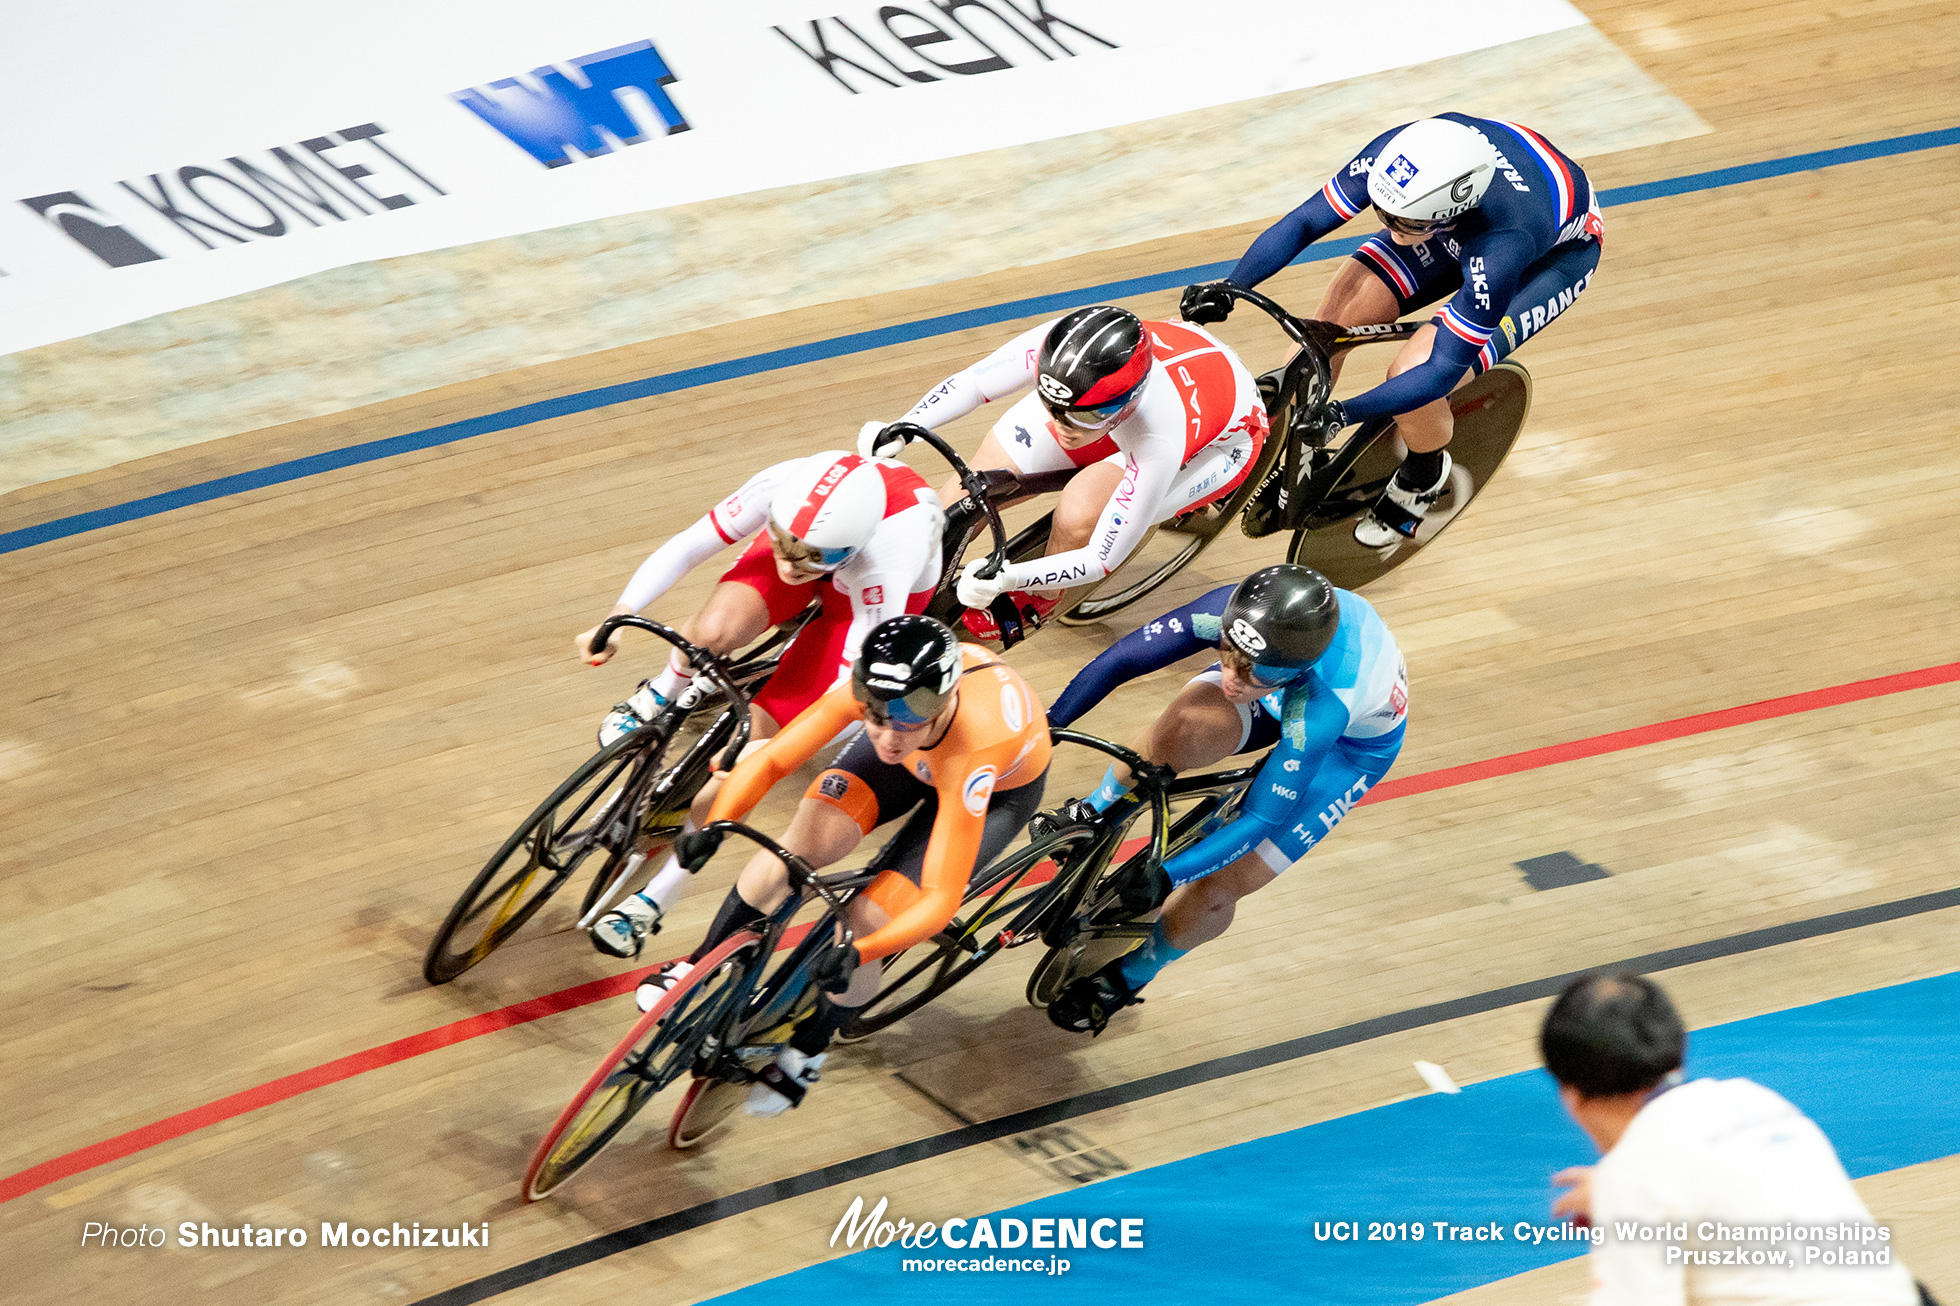 Women's Keirin 1st Round / 2019 Track Cycling World Championships Pruszków, Poland